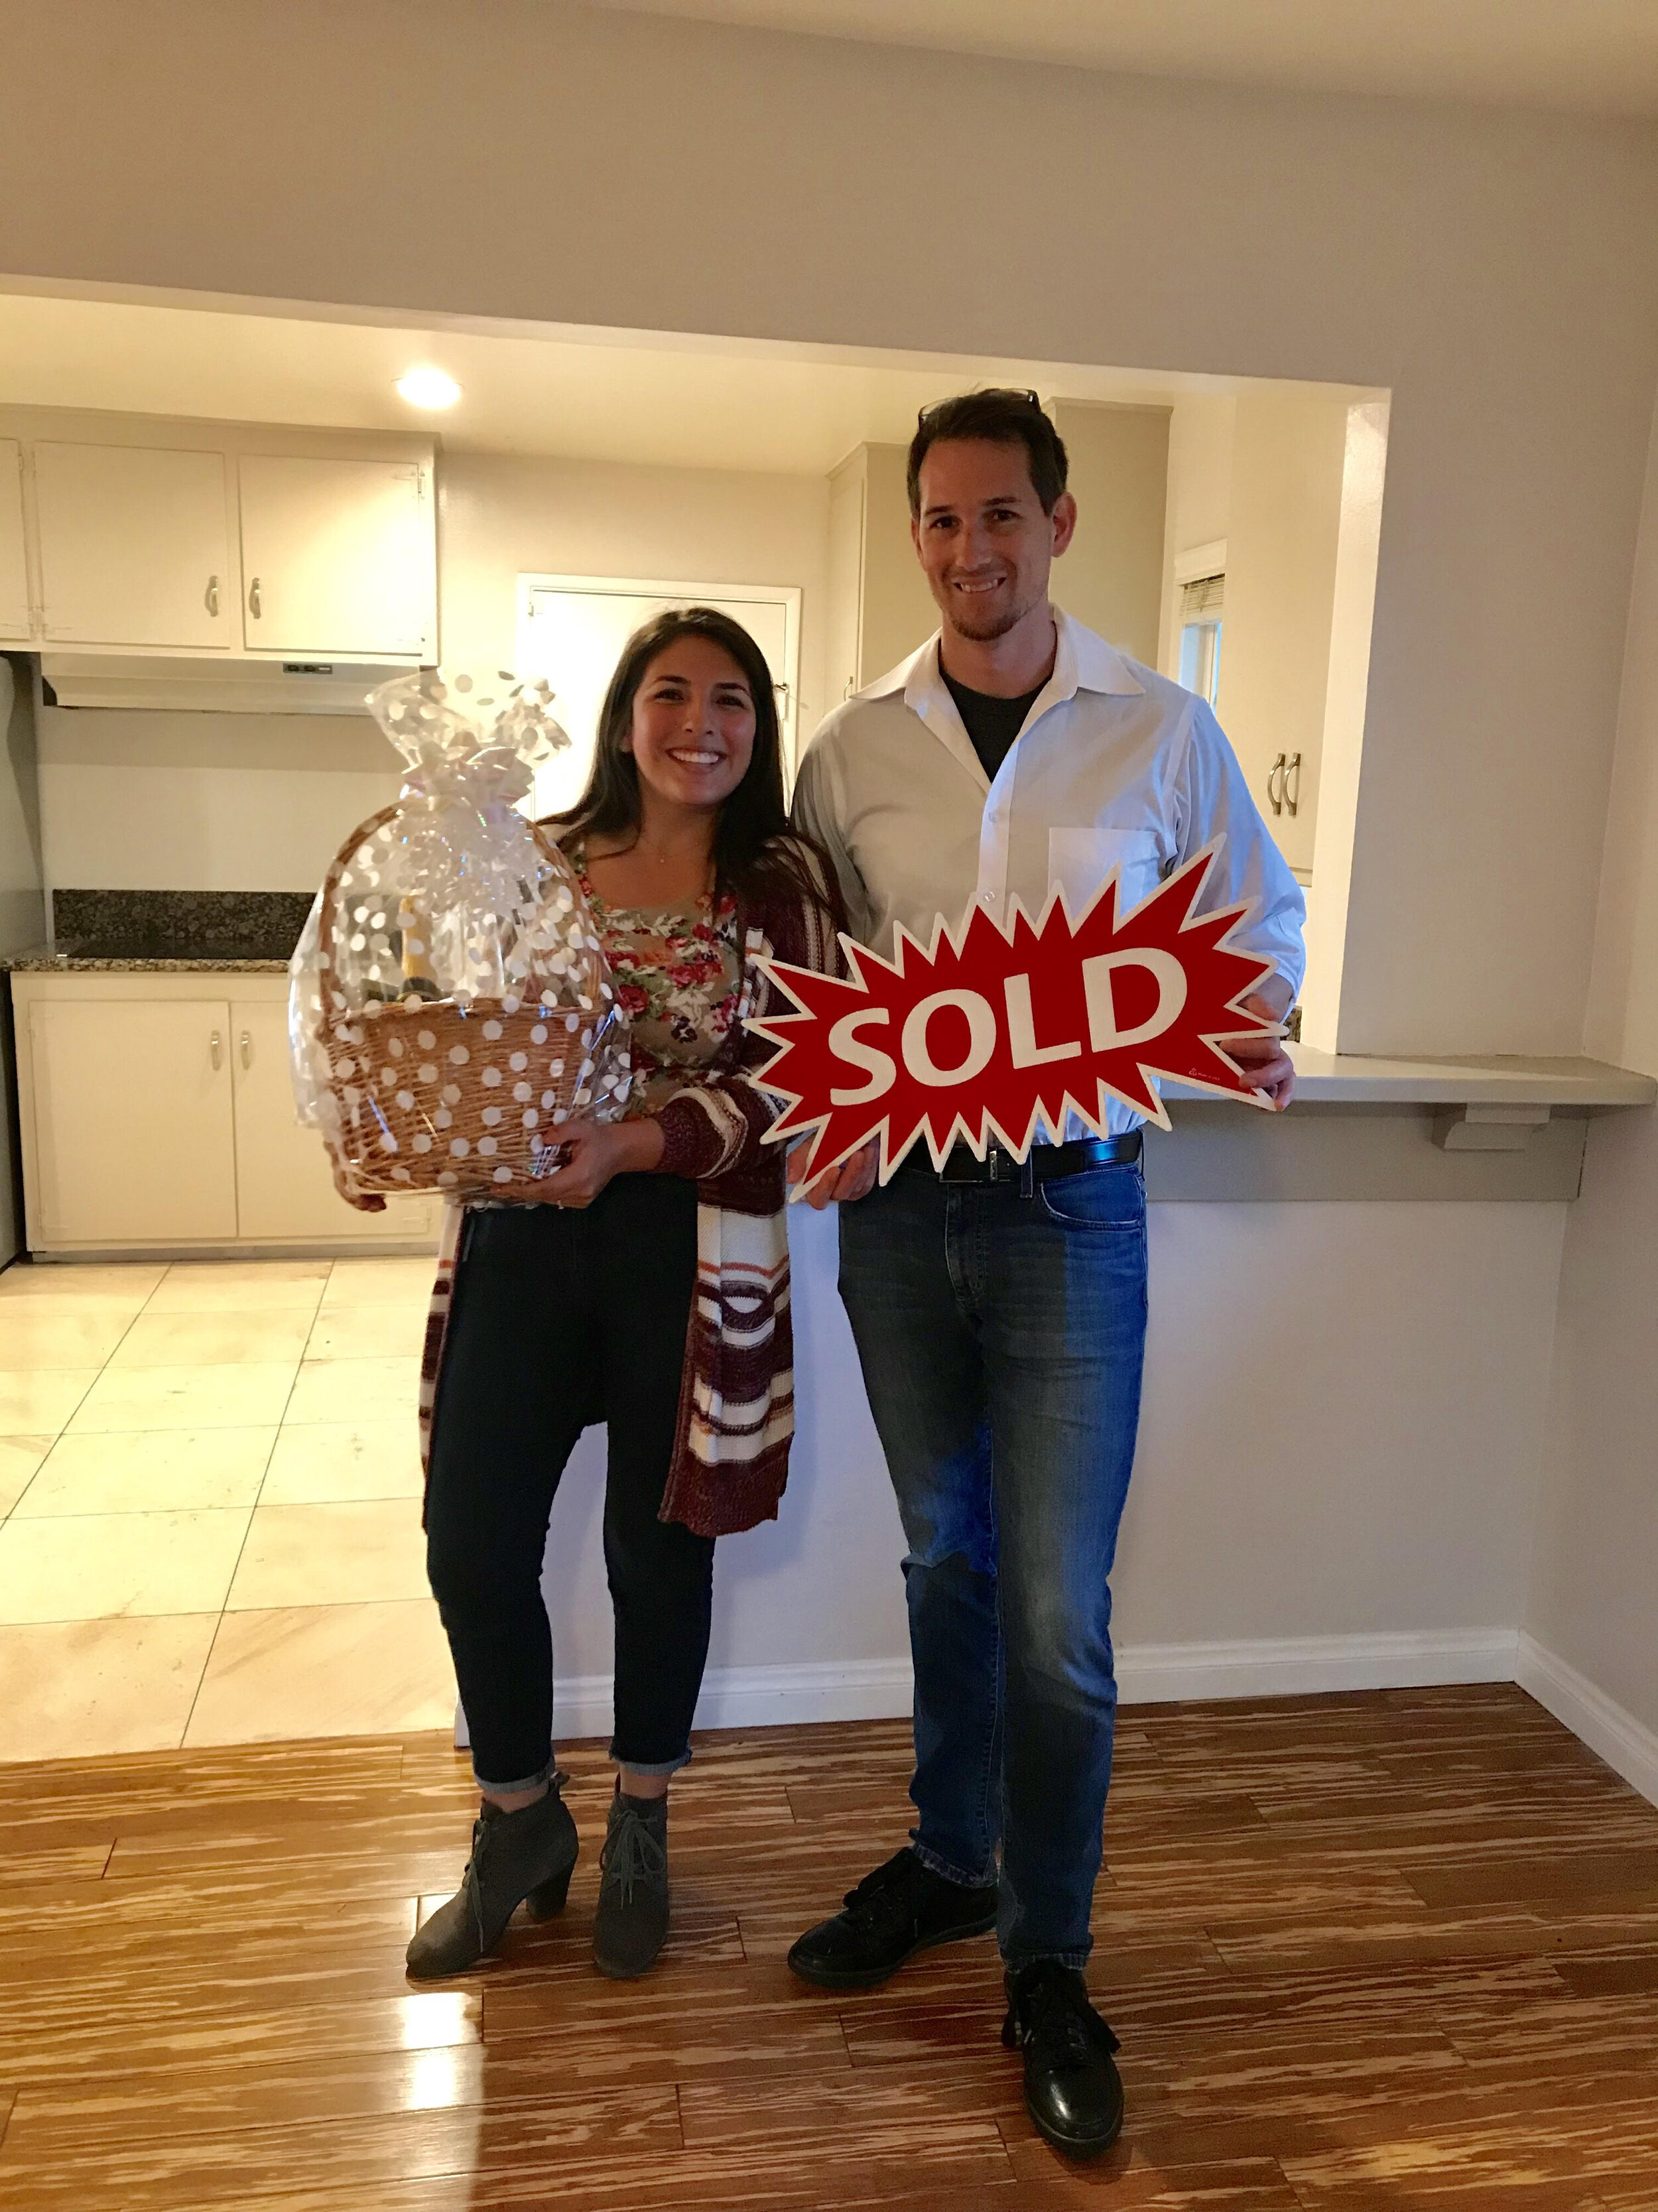 First Time Home Buyers - As told by Tania Rivera (Buyers Agent)A big congratulations to our clients Paul and Gabby on the purchase of their first home! After looking at different areas in the county we were able to identify the best location for them and found them the perfect home. We negotiated over $30,000 off the original asking price, making this property the lowest priced home in the neighborhood (instant equity).The seller also paid for all of the repairs we requested so they're walking into a beautiful turn key property. This was their dream and I feel very humbled and touched to have been a part of it.